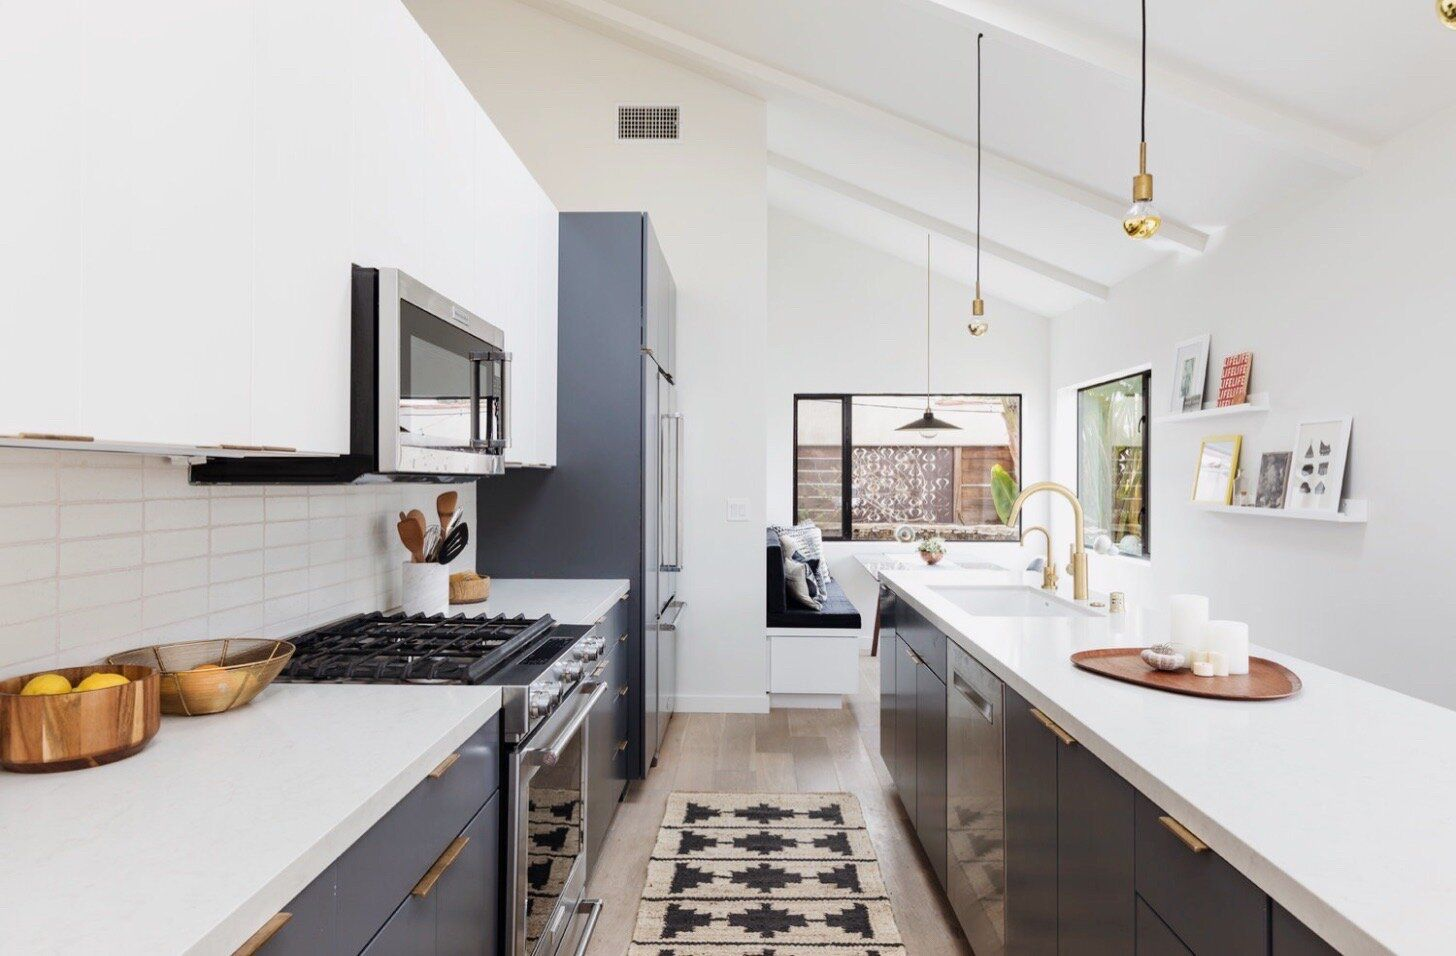 All white kitchen with slanted ceiling, gray-blue cabinetry